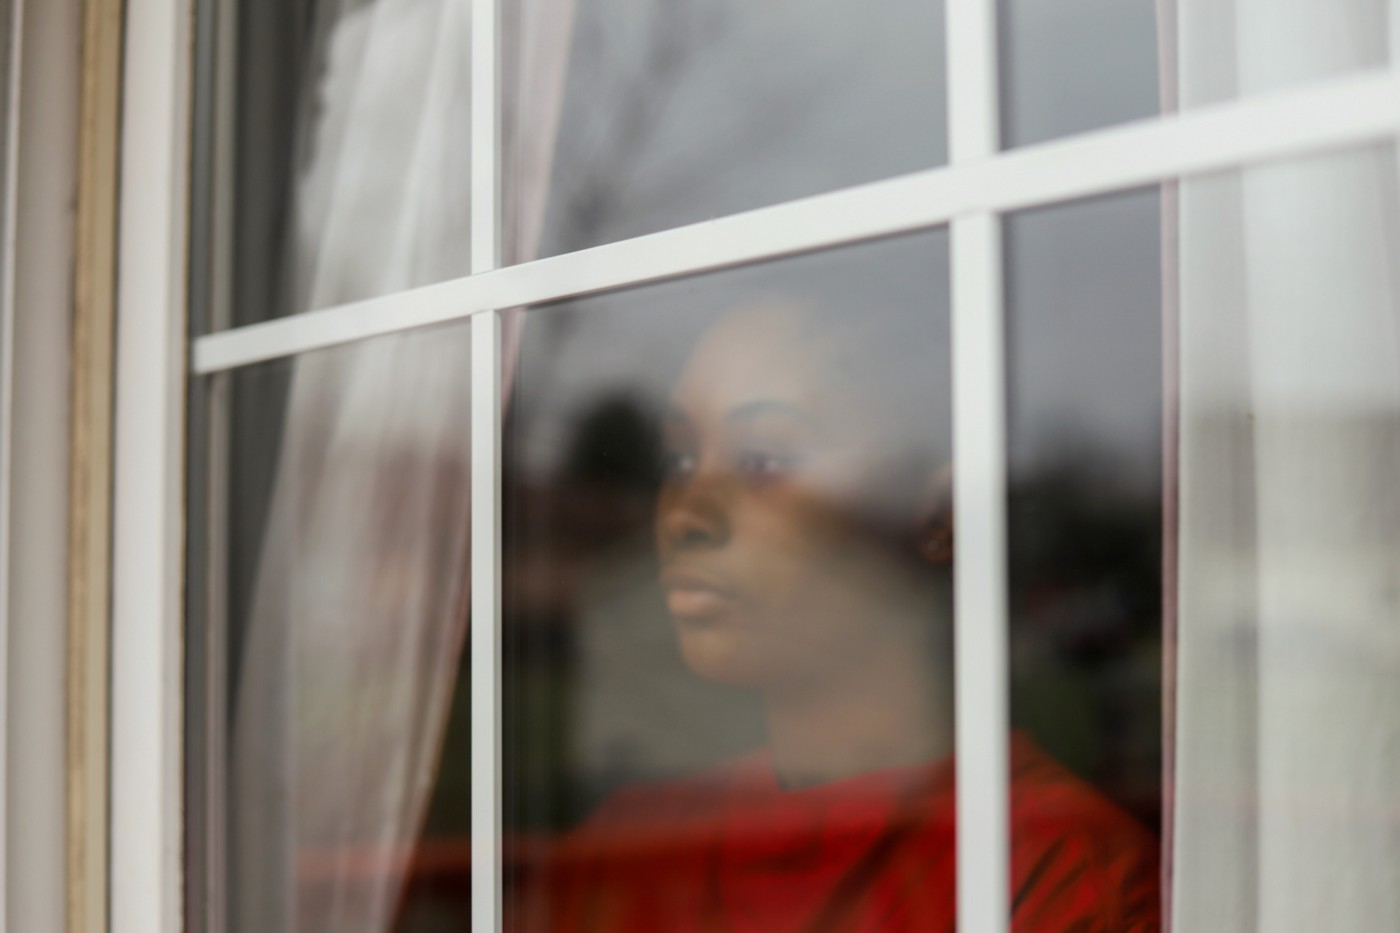 Black woman looking out the window with a forlorn expression.